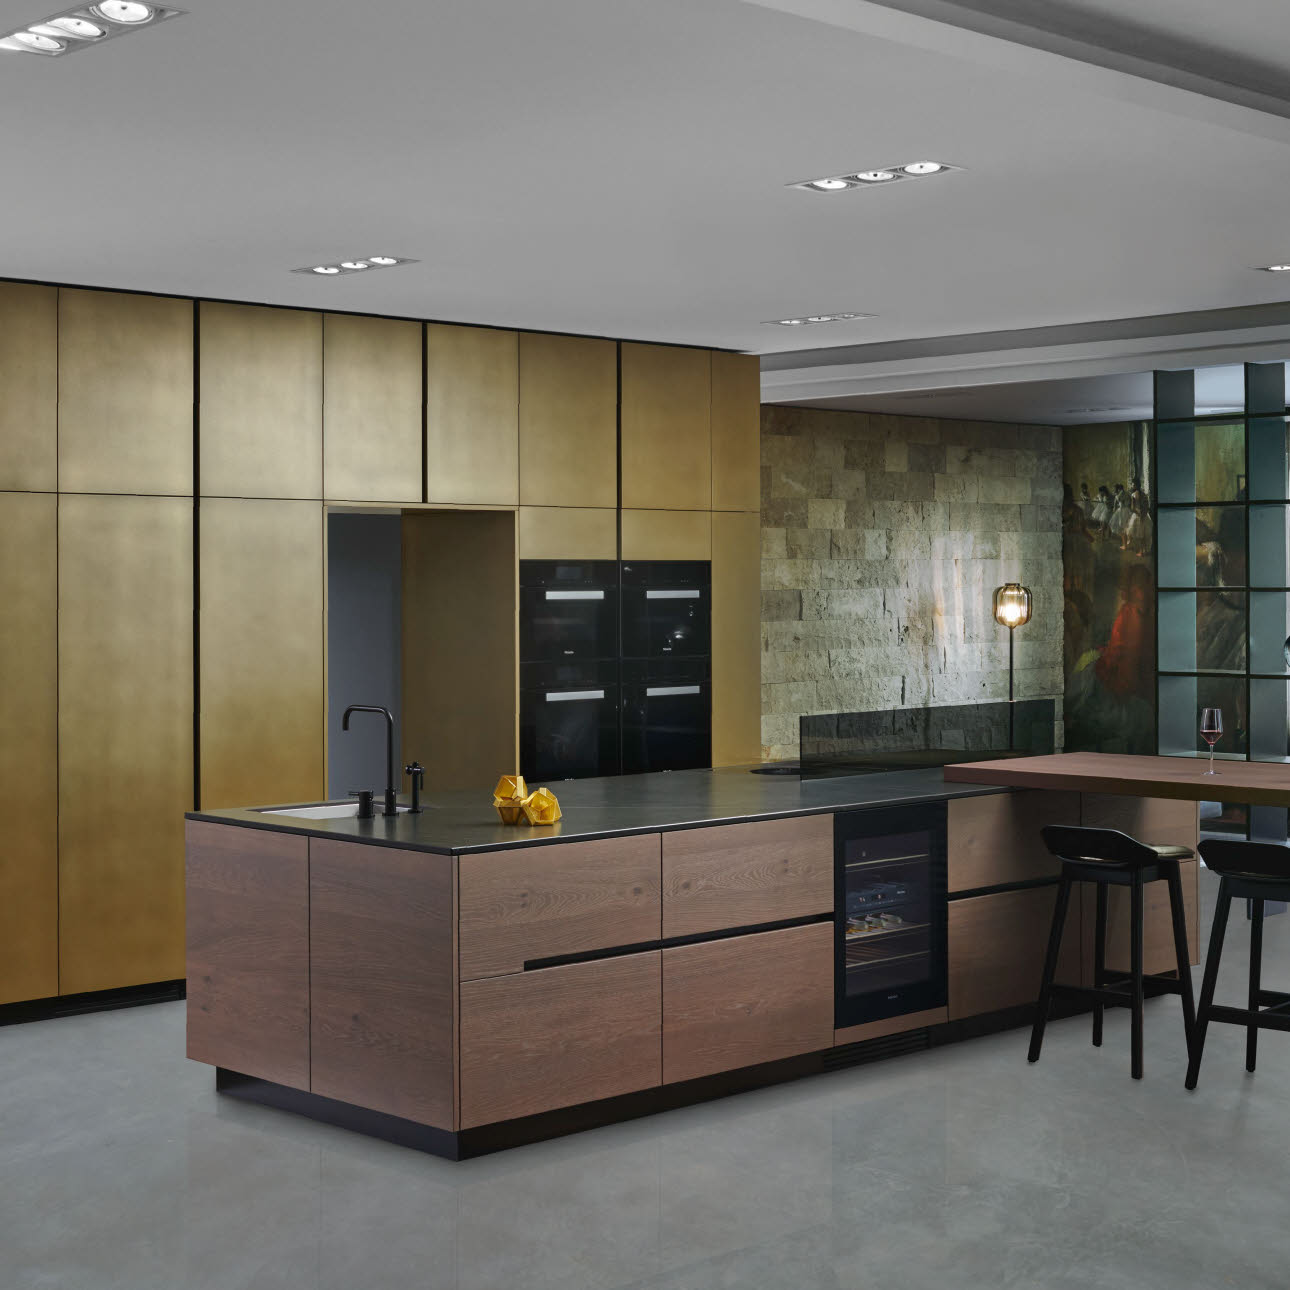 Industrial Design Kitchen Intuo